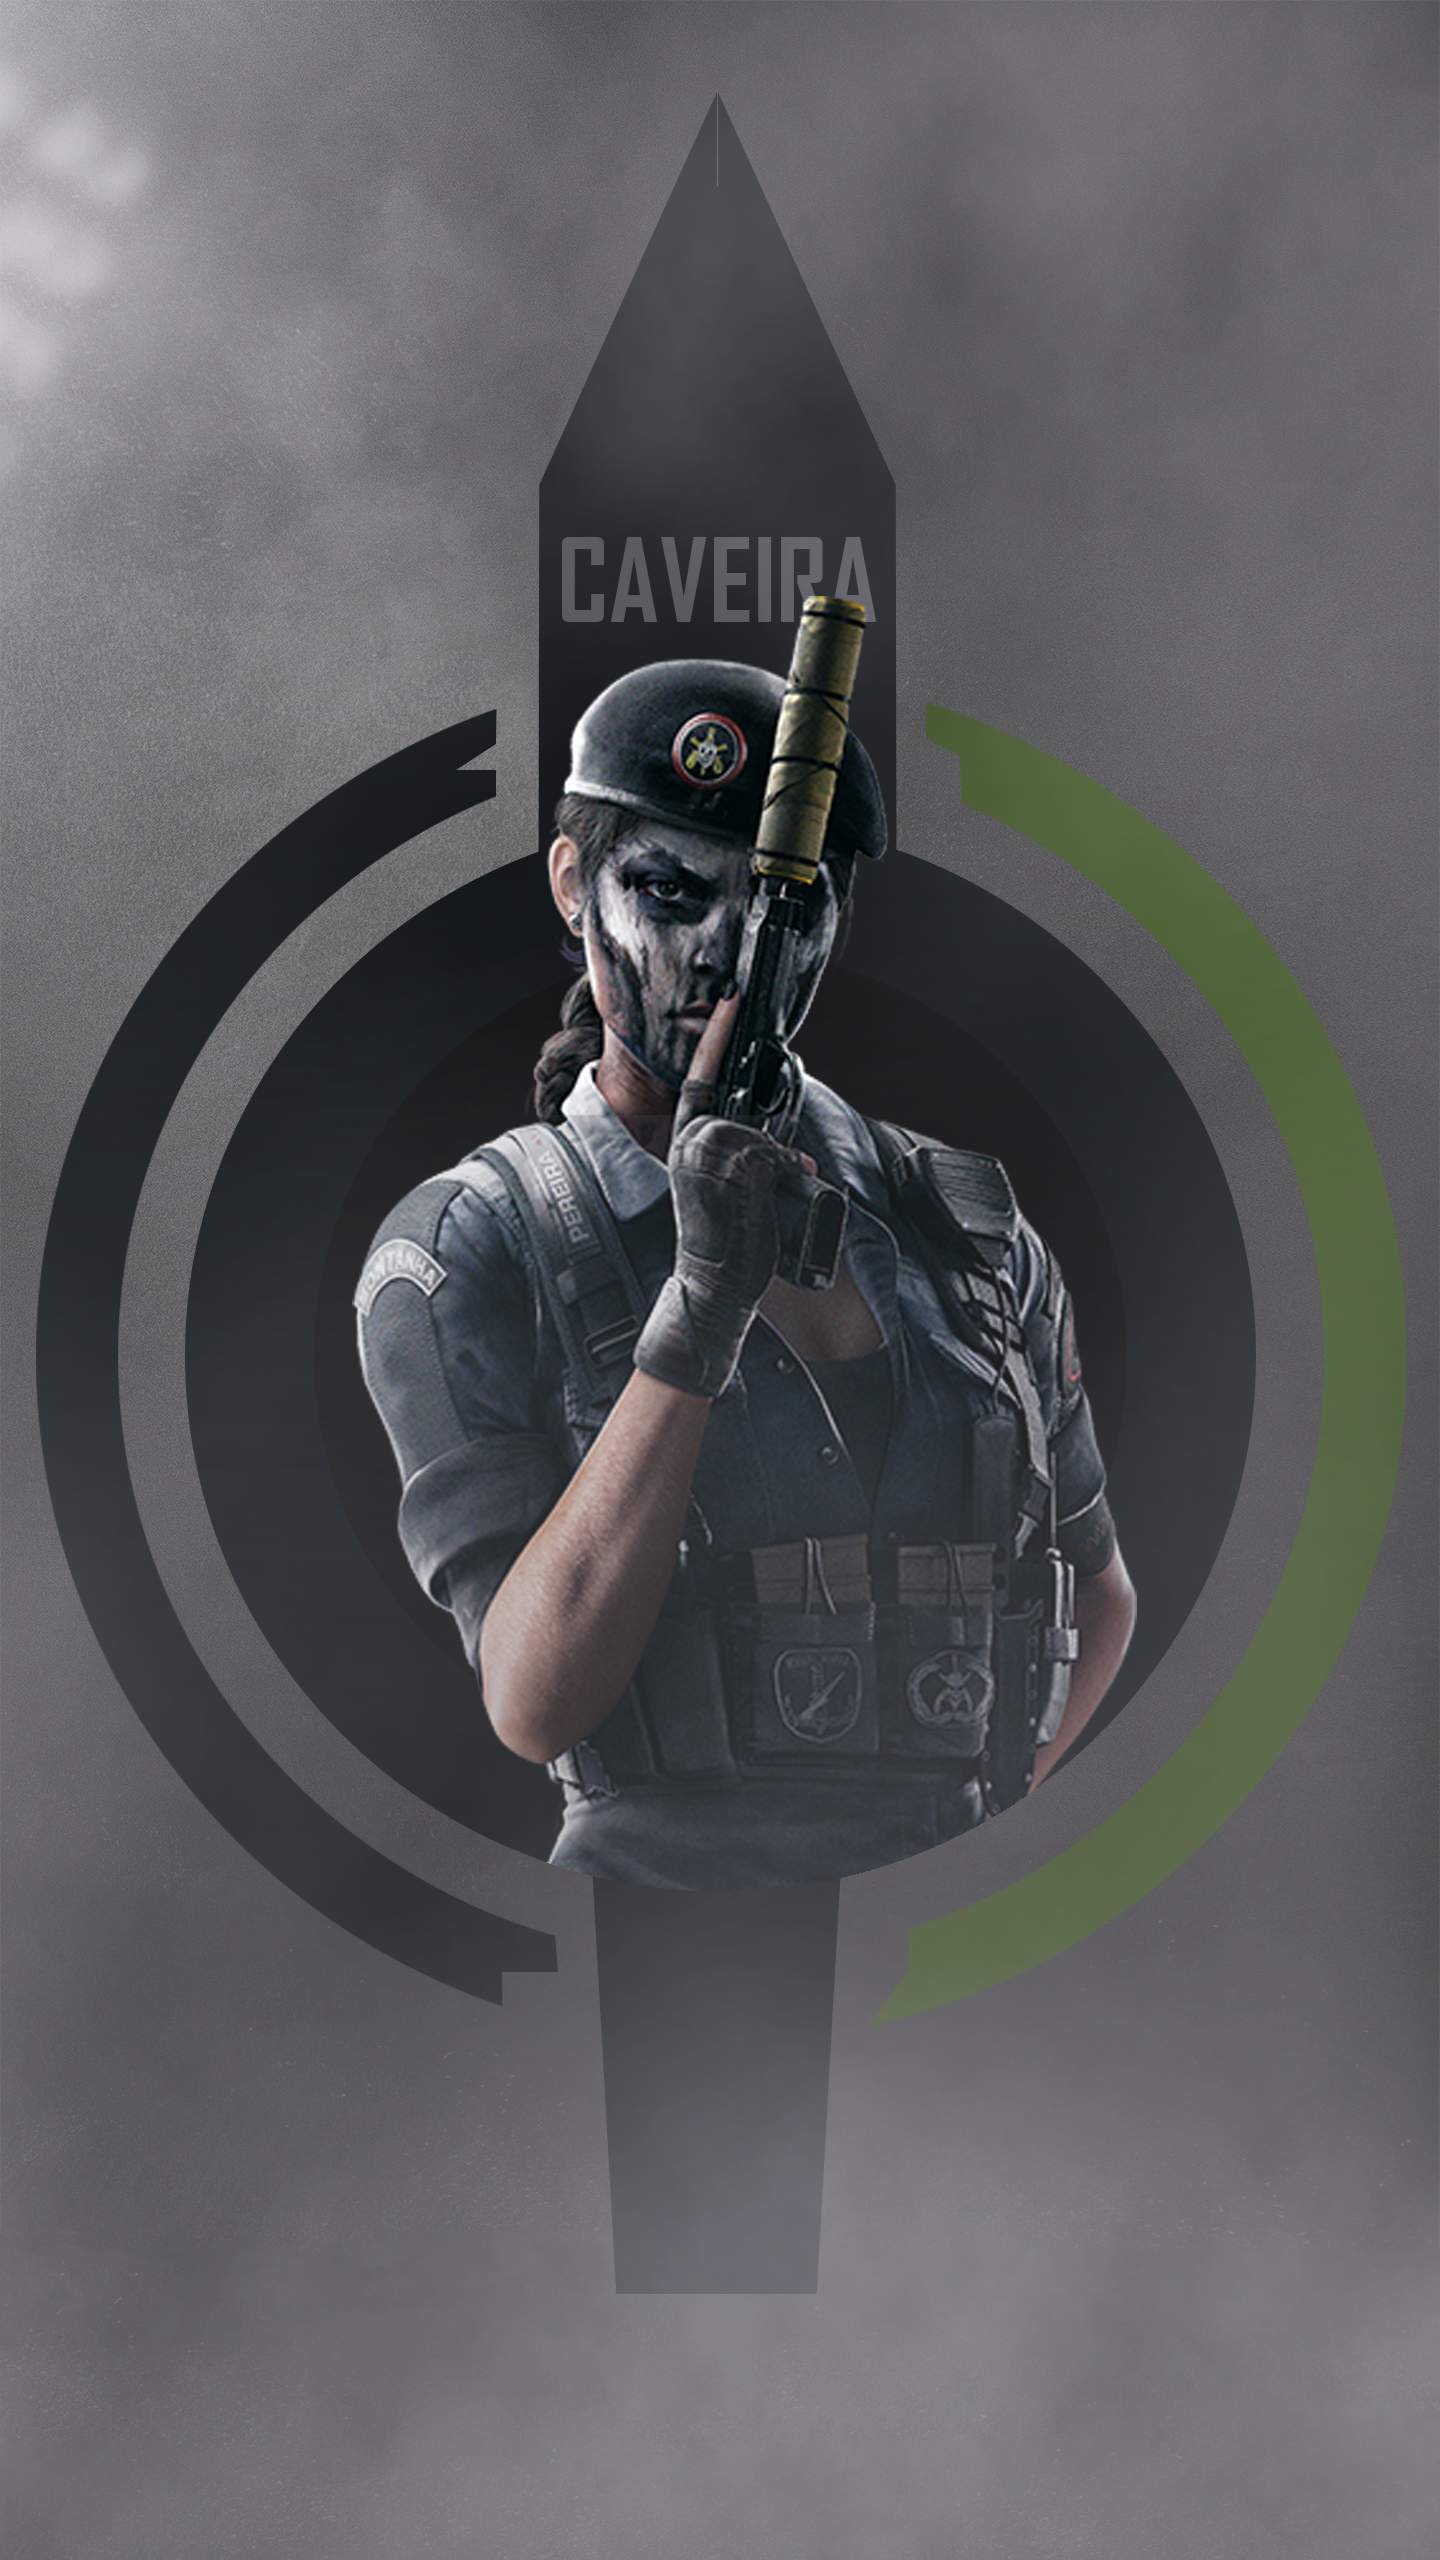 Free Download Where Are They Caveira Phone Wallpaper 2k Rainbow6